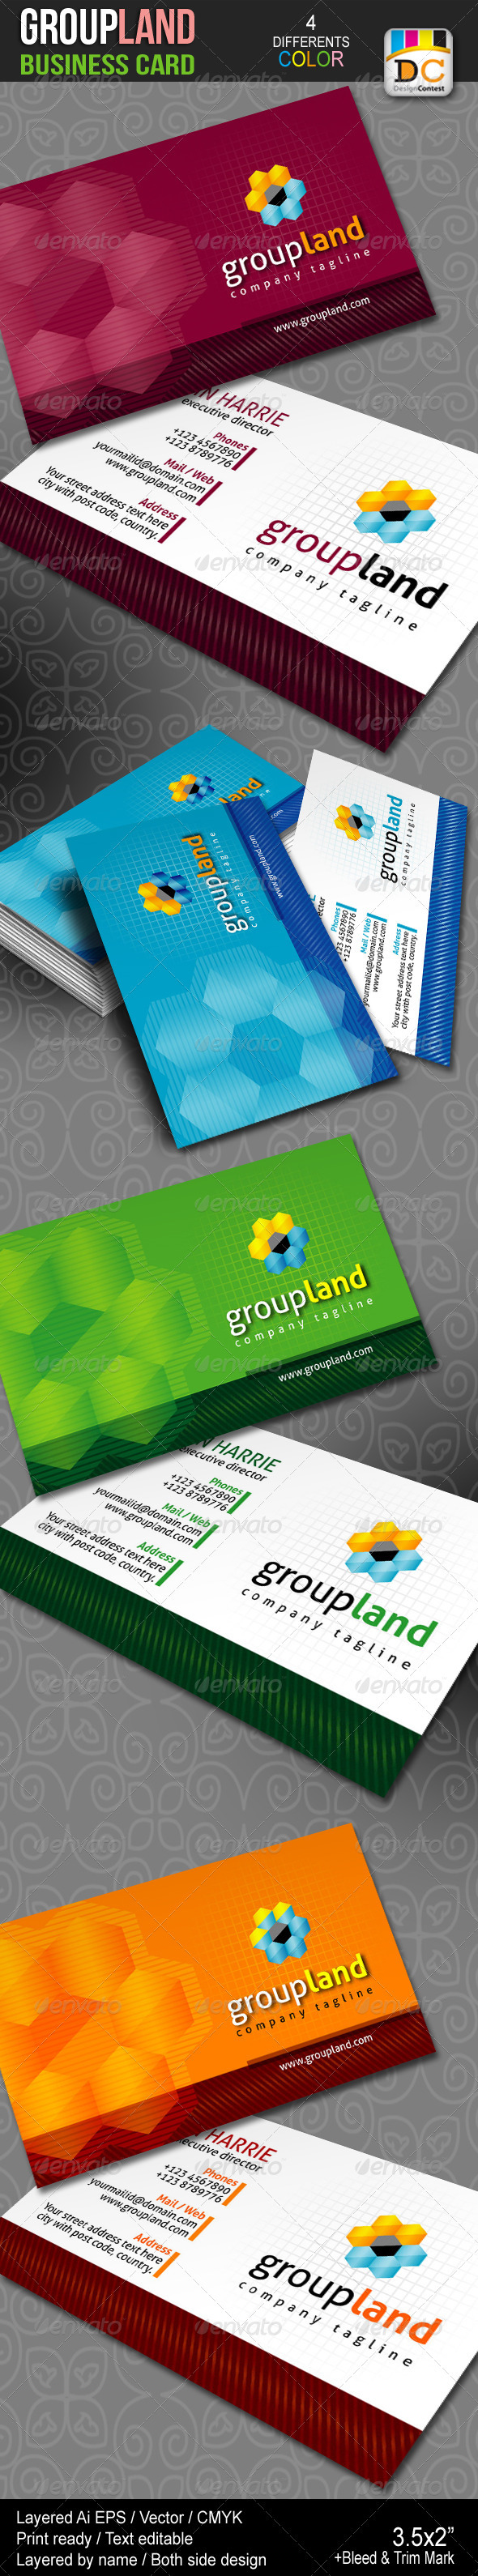 Group Land Business Cards - Business Cards Print Templates